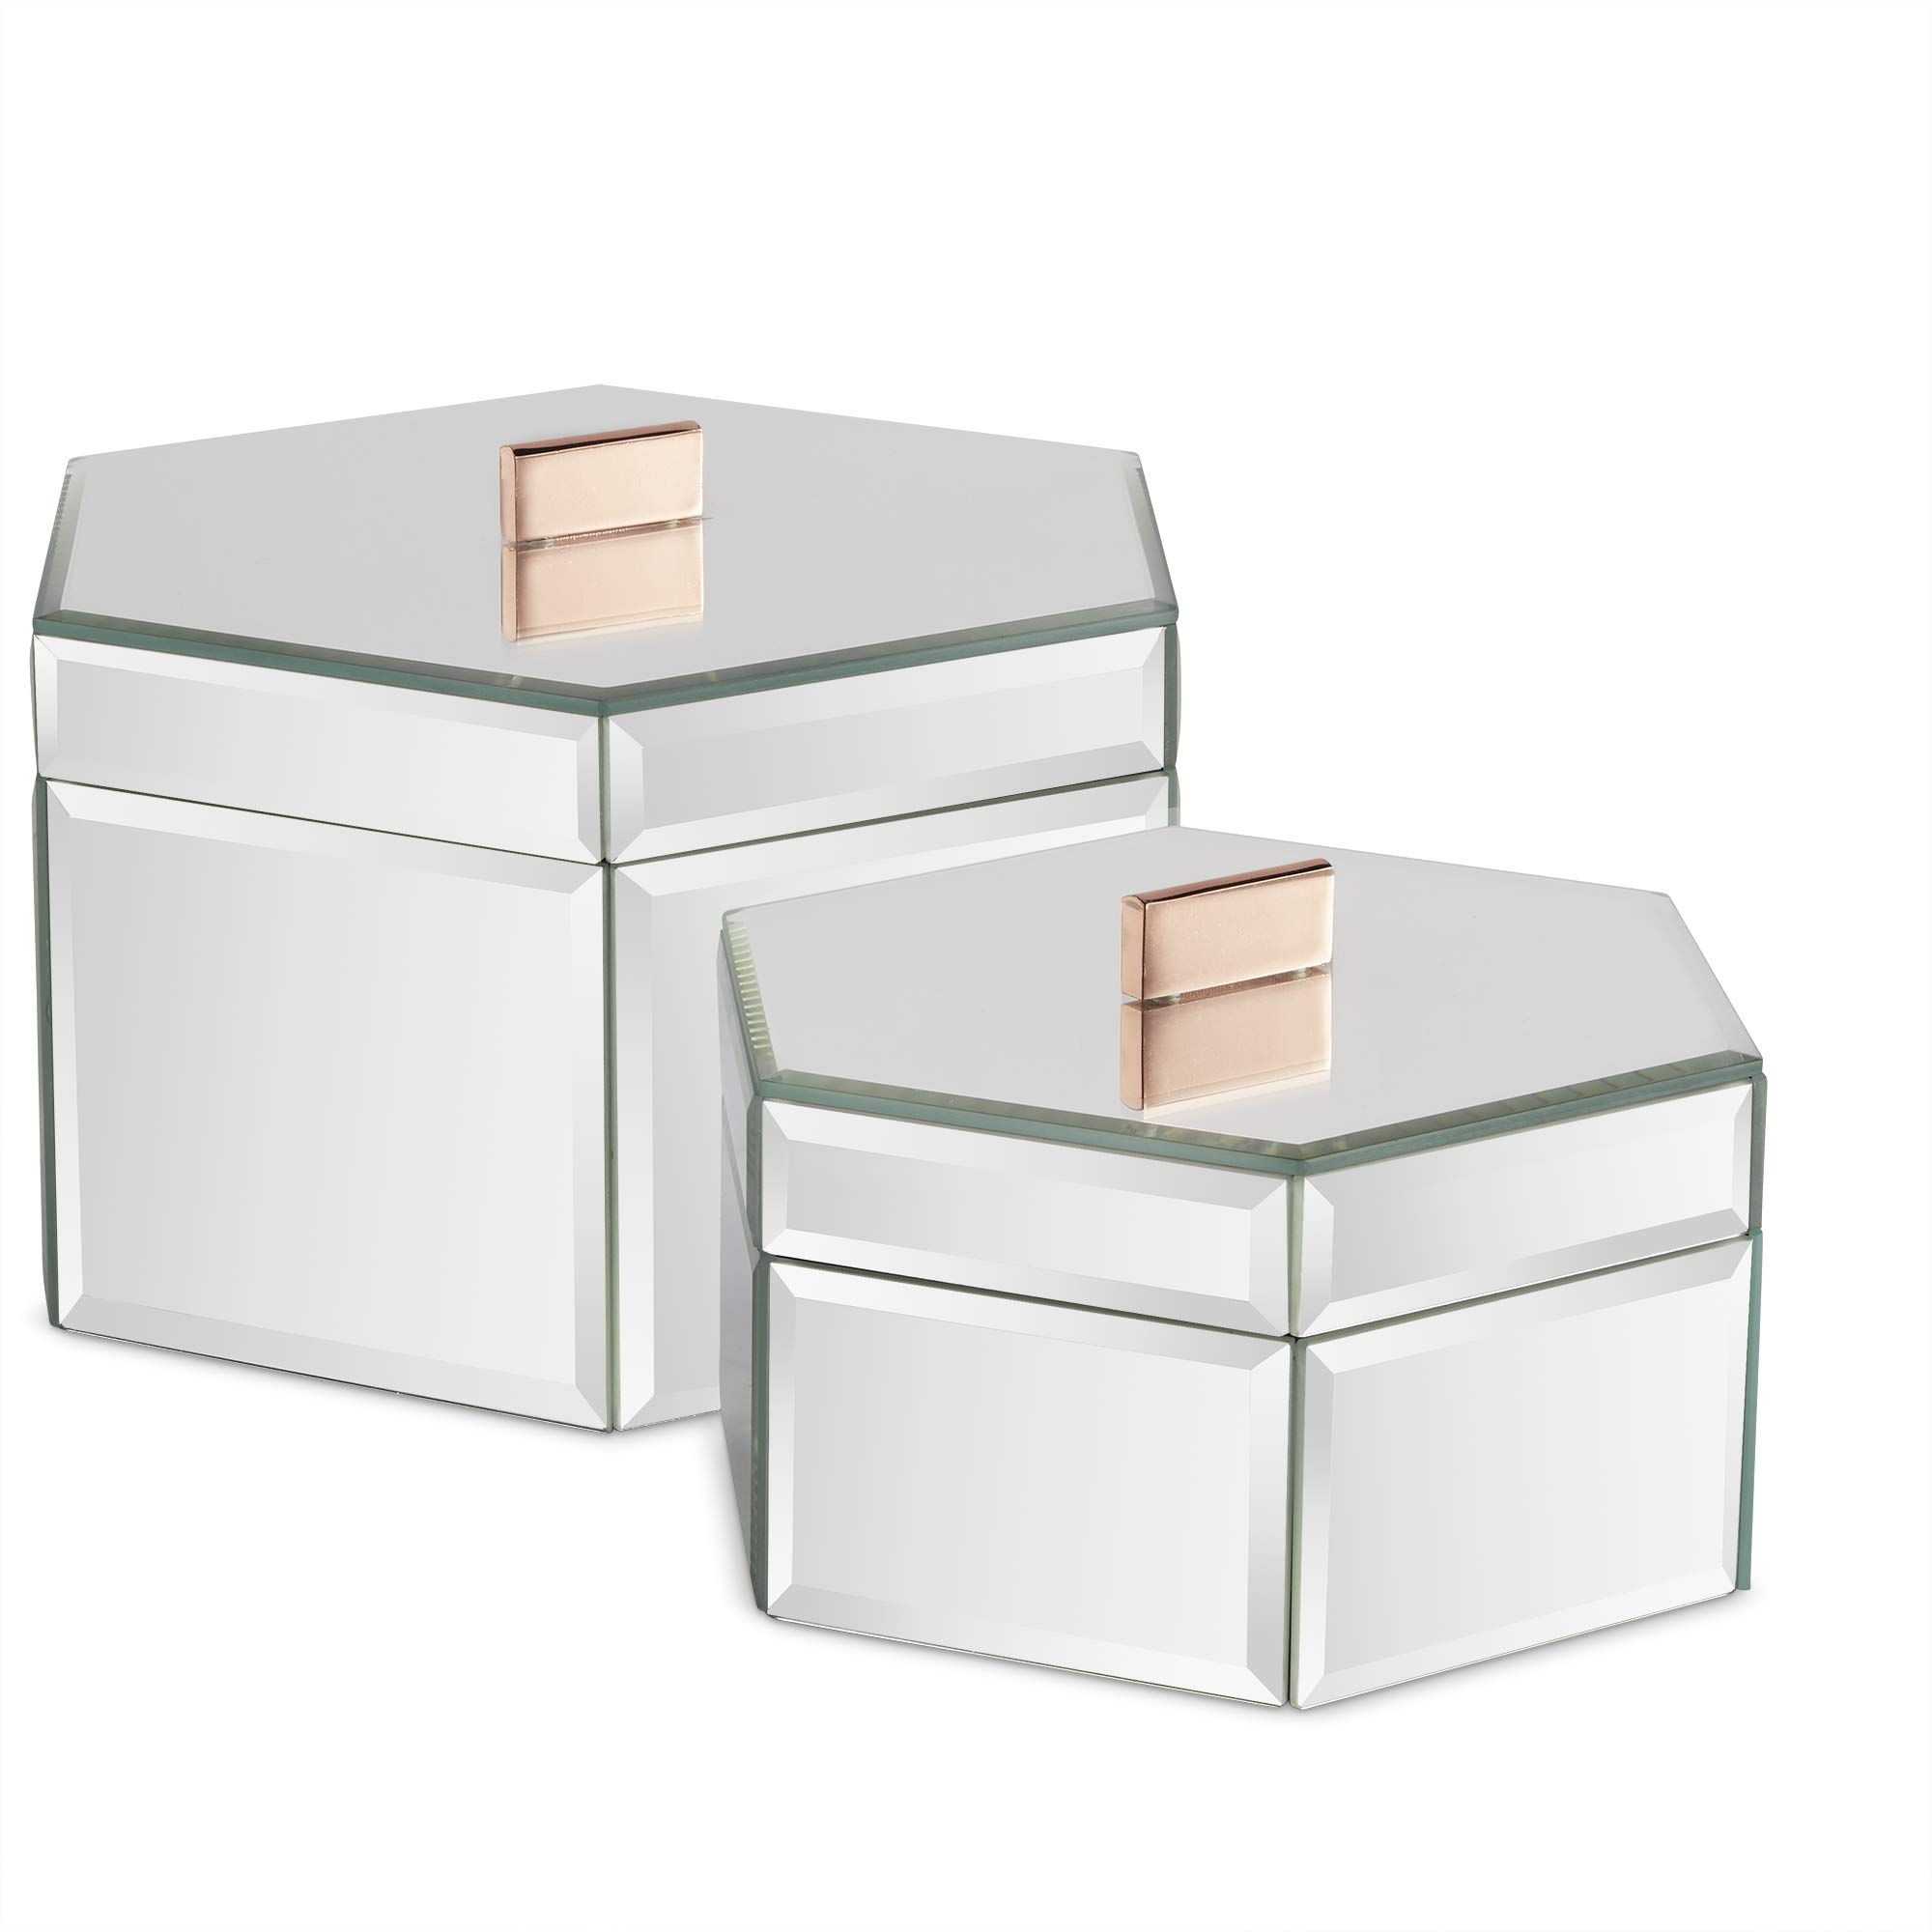 Beautify Large Octagon Mirrored Glass Jewelry Box Trinket Boxes Desk Organizers for Jewelry and Accessories Silver Set of 2